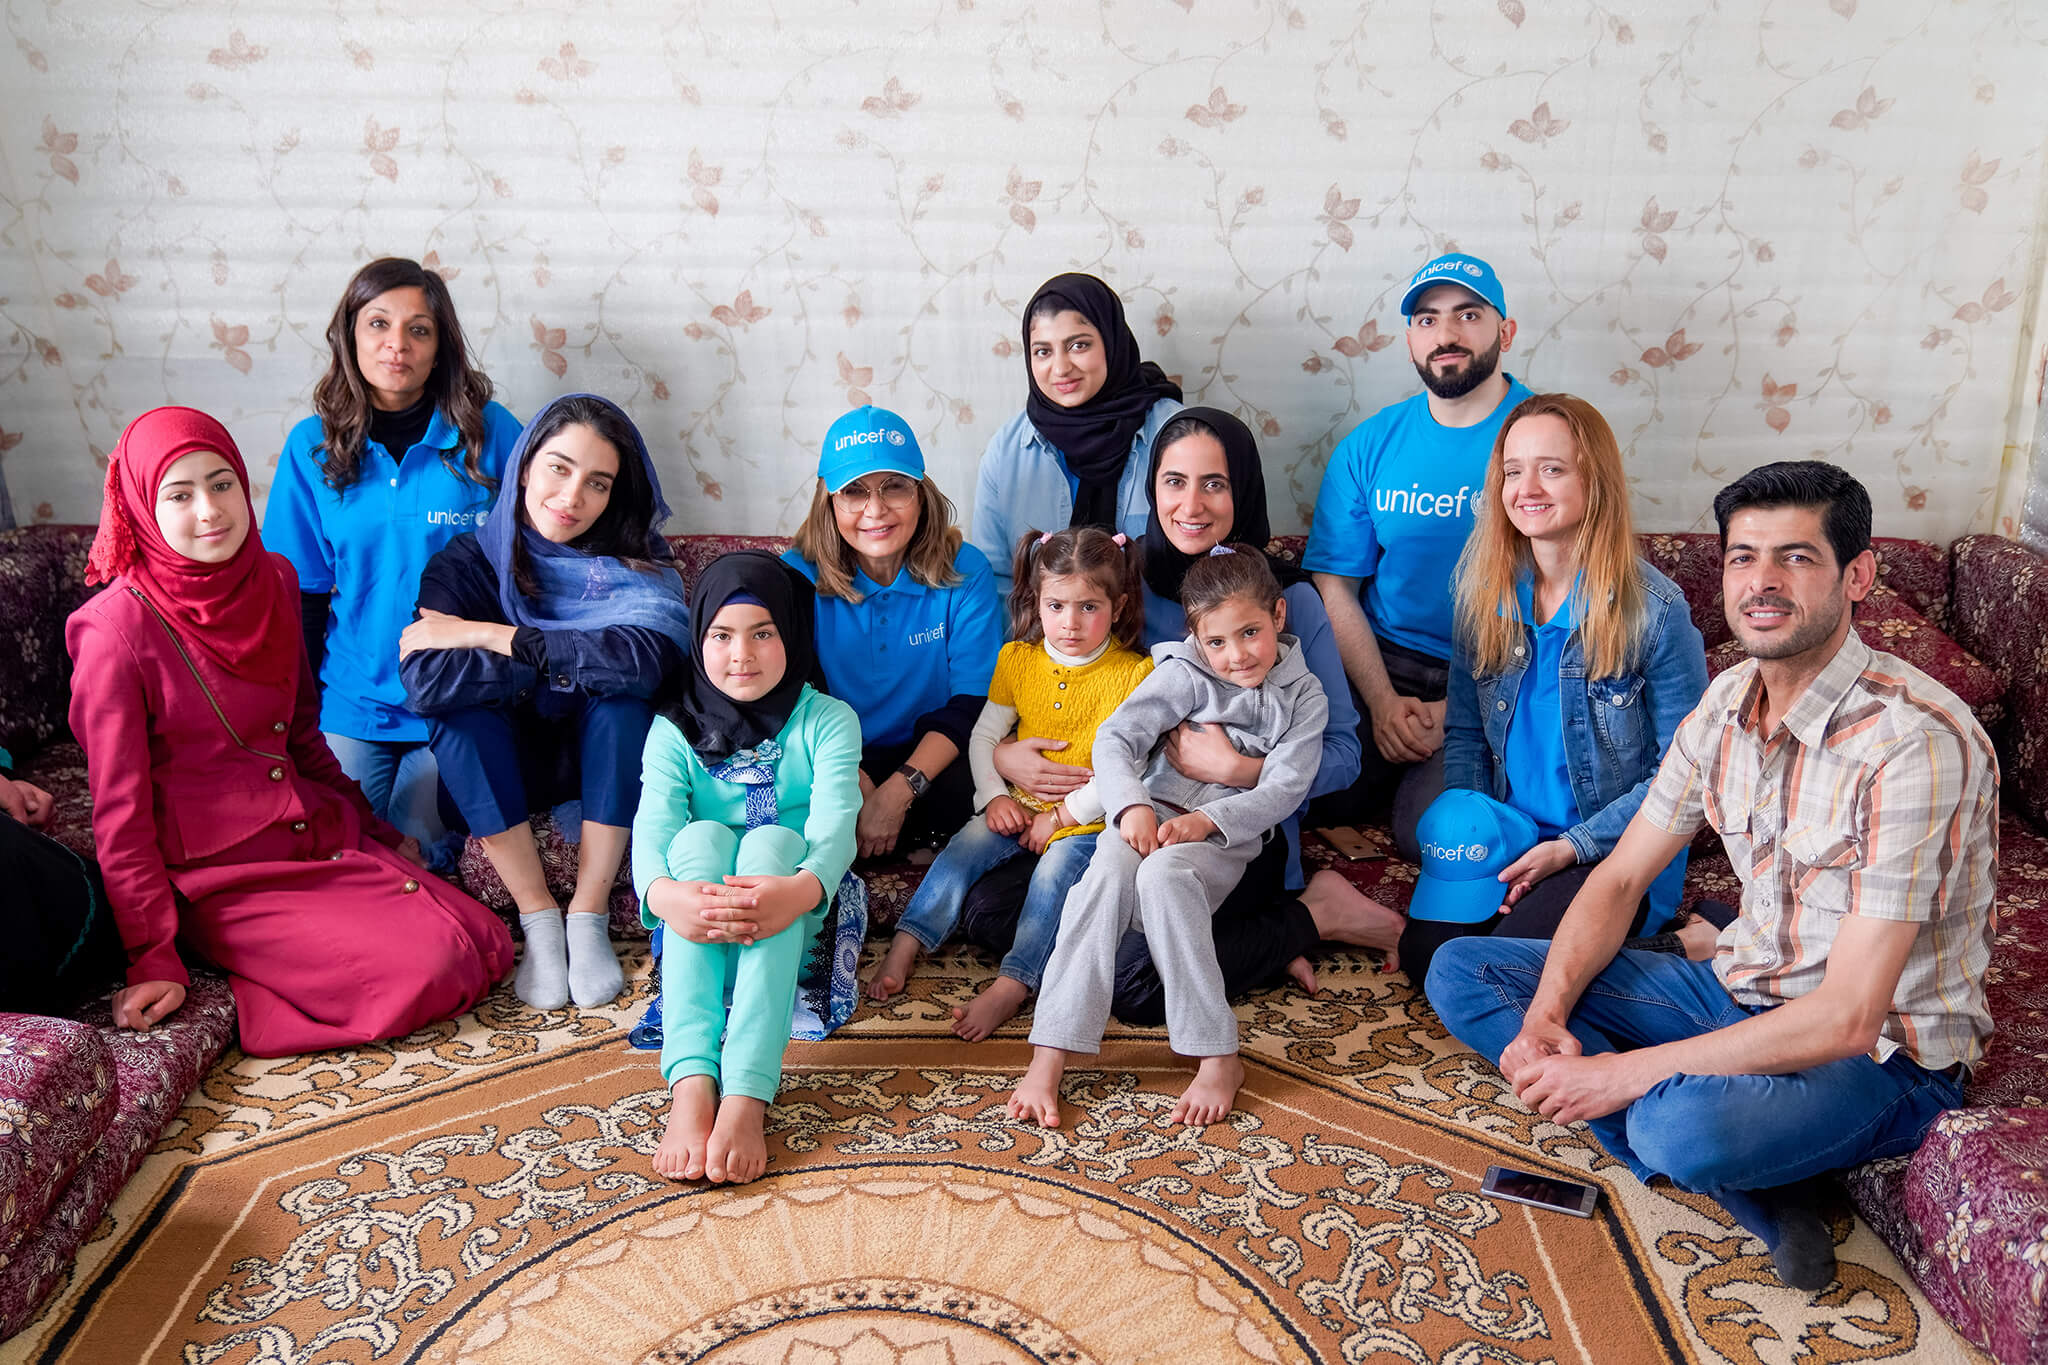 UNICEF Azraq Refugee Camp in Jordan gets help from Central Hotels COO